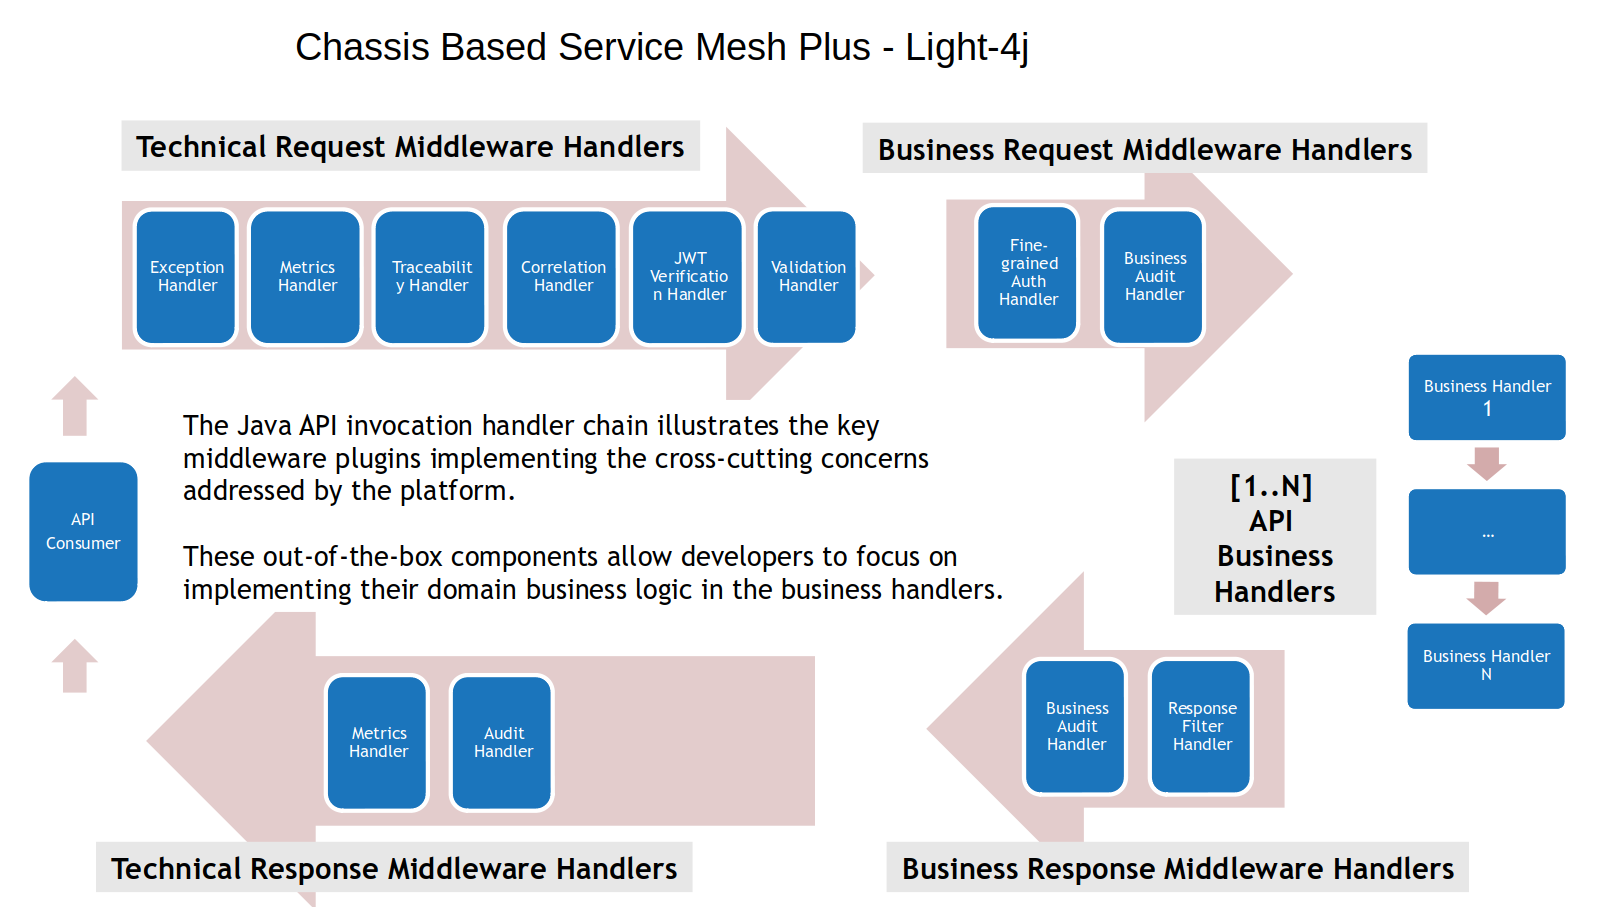 light-4j-service-mesh-plus